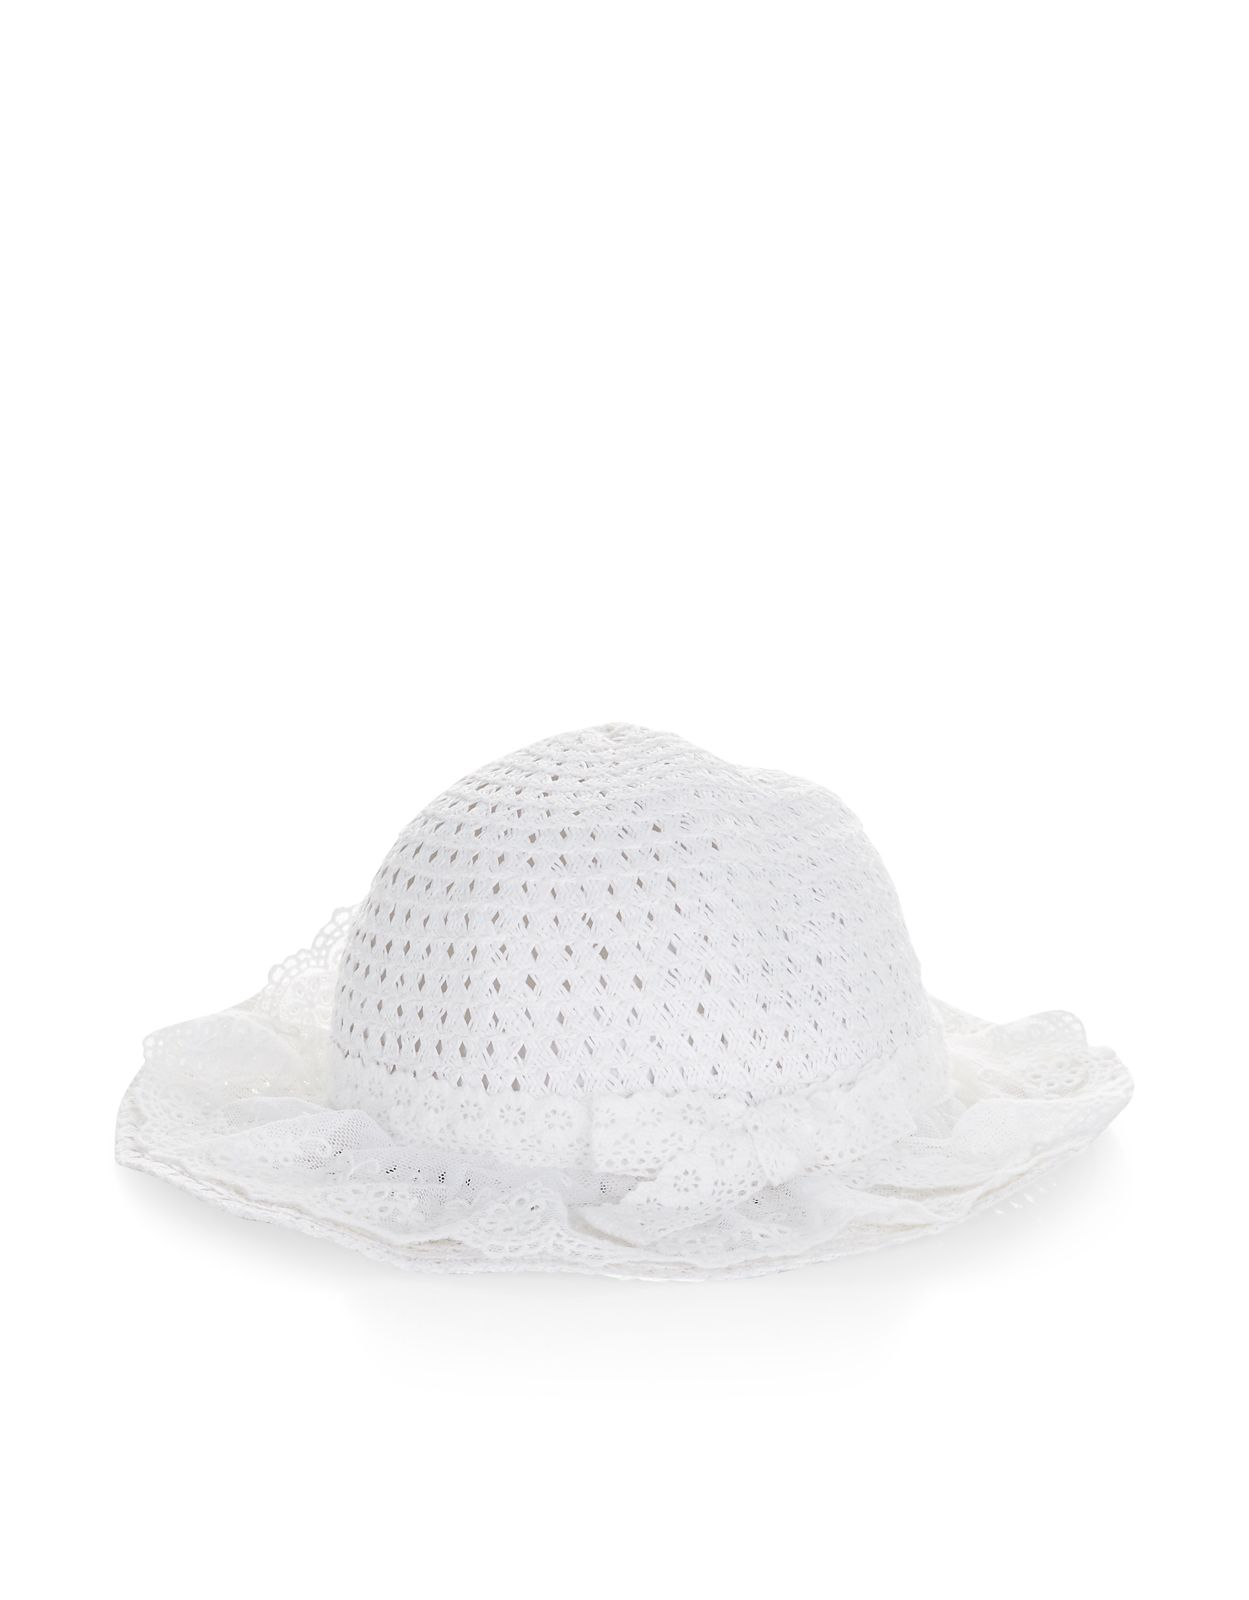 This pretty floppy hat for baby girls is decorated with lace trims and frills, and is perfect for days out in the sunshine.